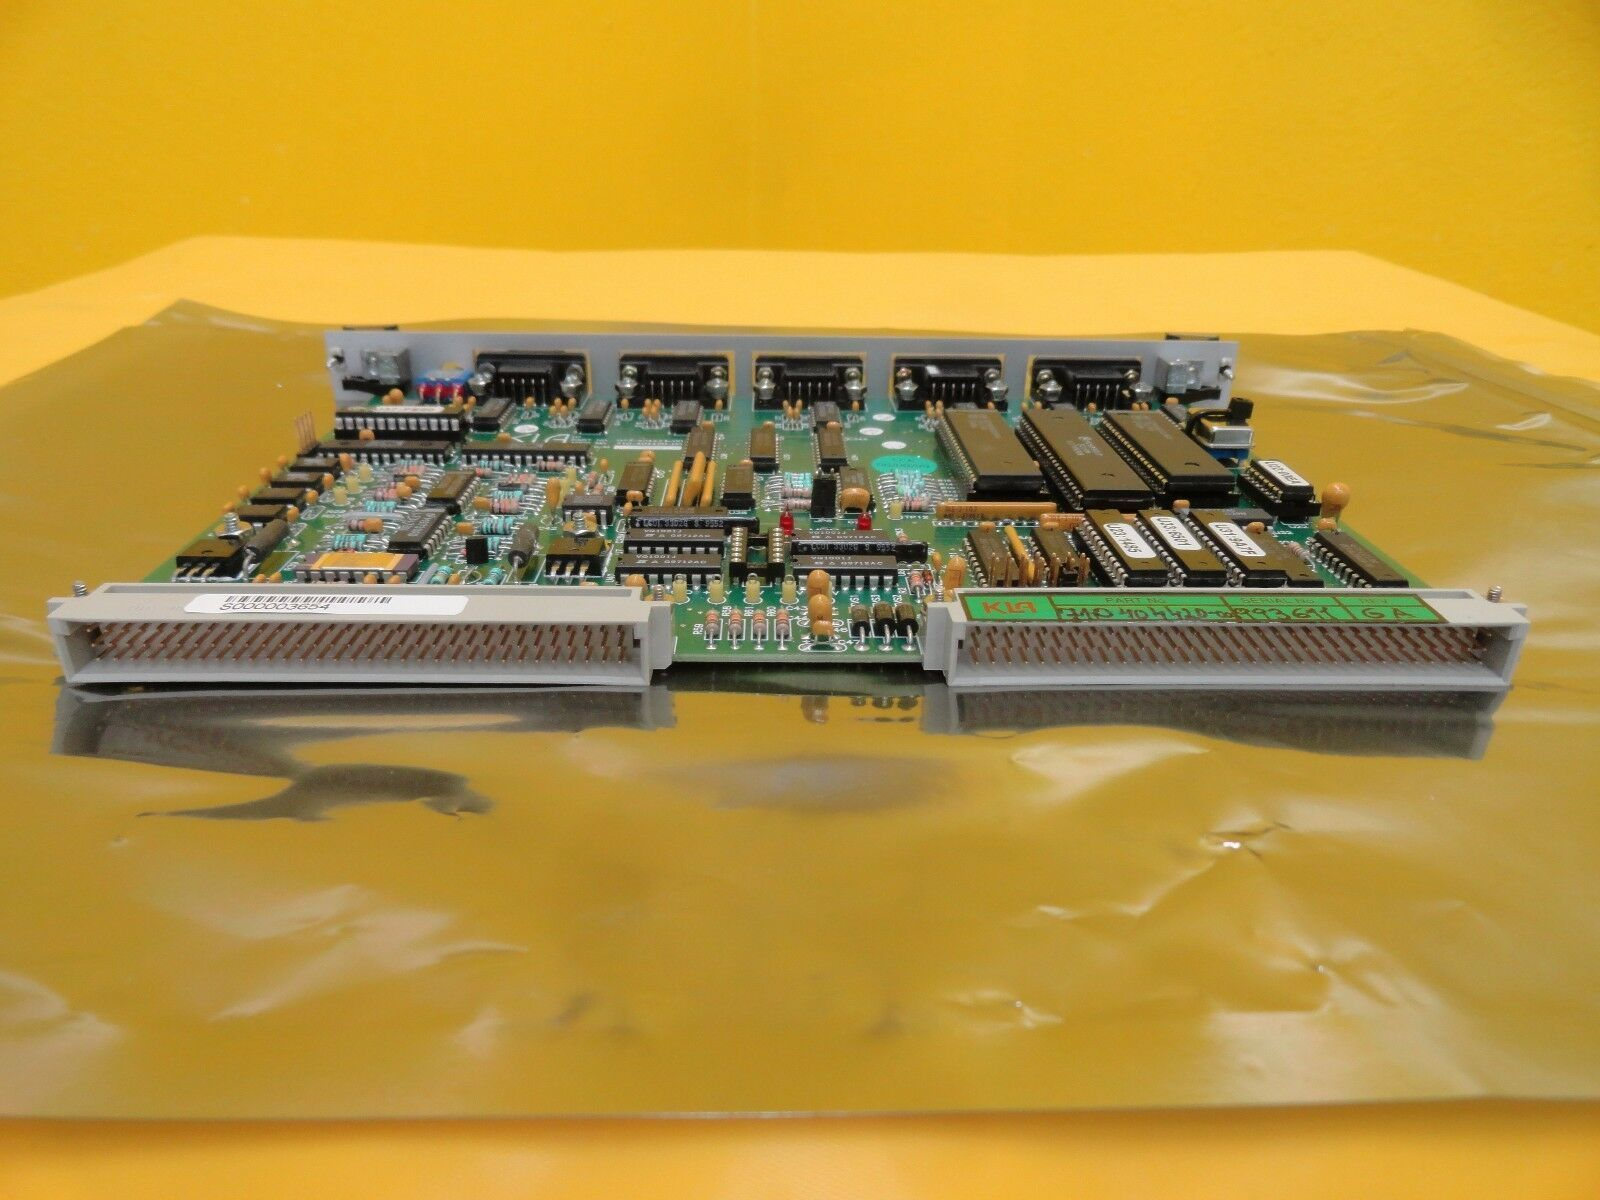 KLA-Tencor 073-404423-00 I/O PCB Card 710-404420-00 5107 Overlay Used Working